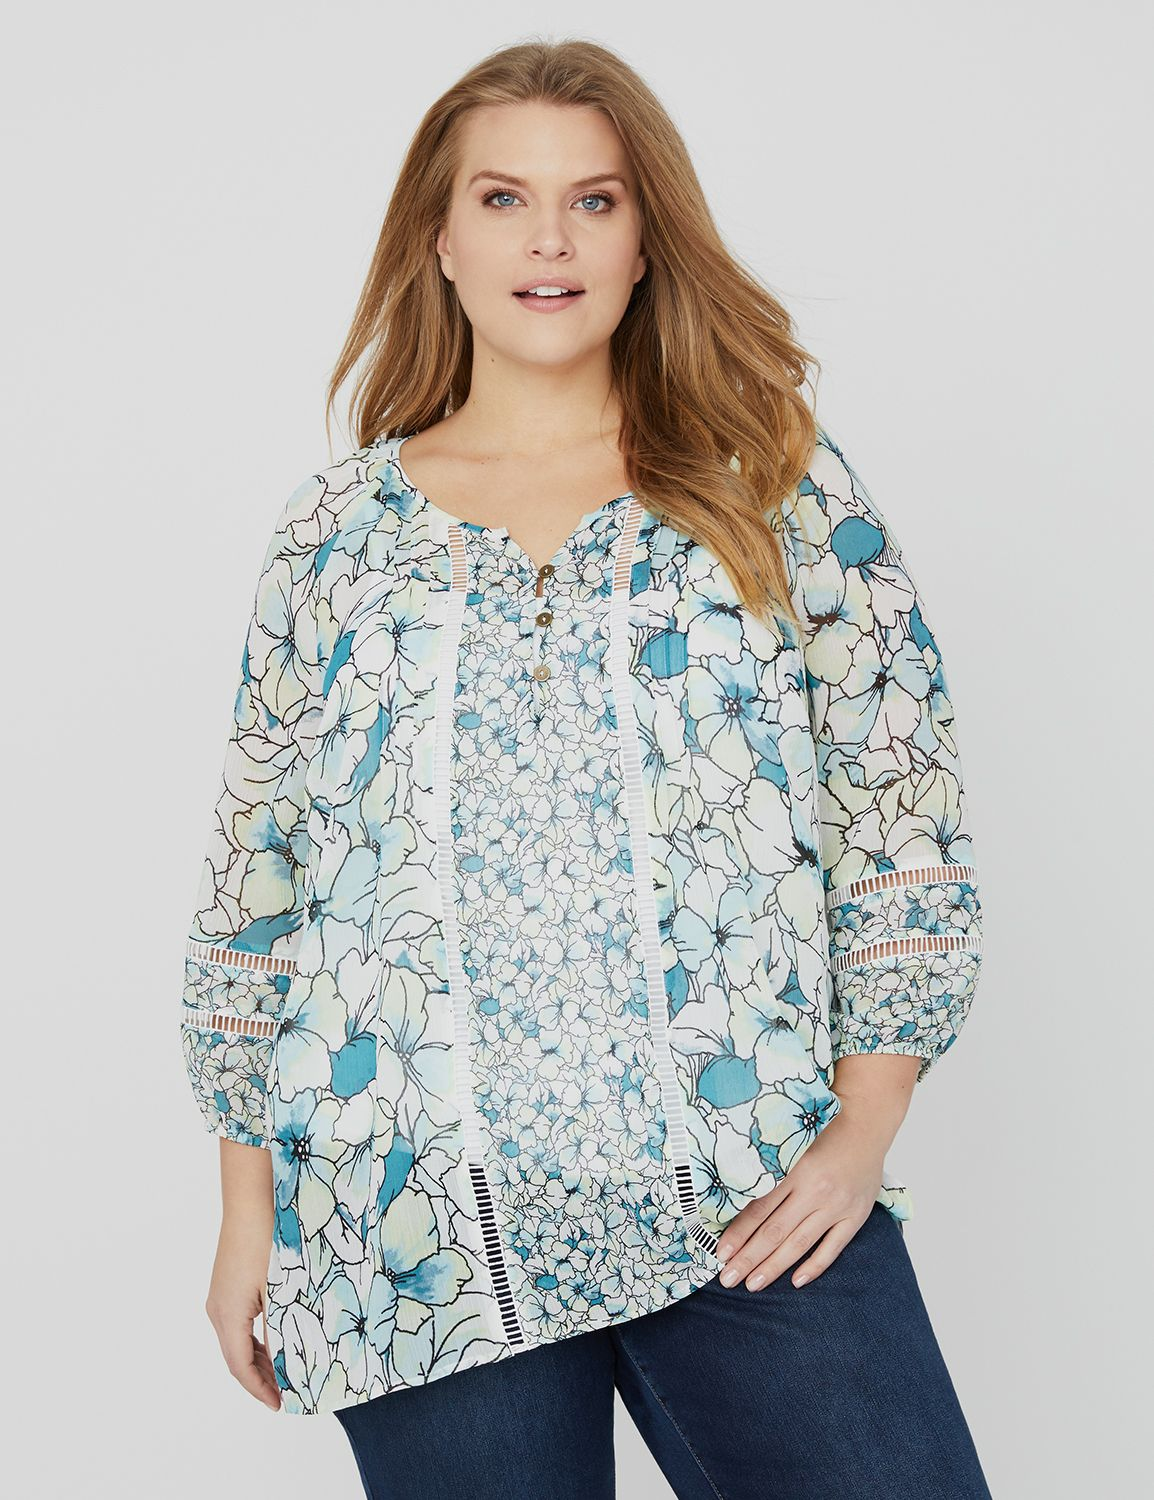 Floral Courtyard Blouse Floral Courtyard Blouse MP-300103589